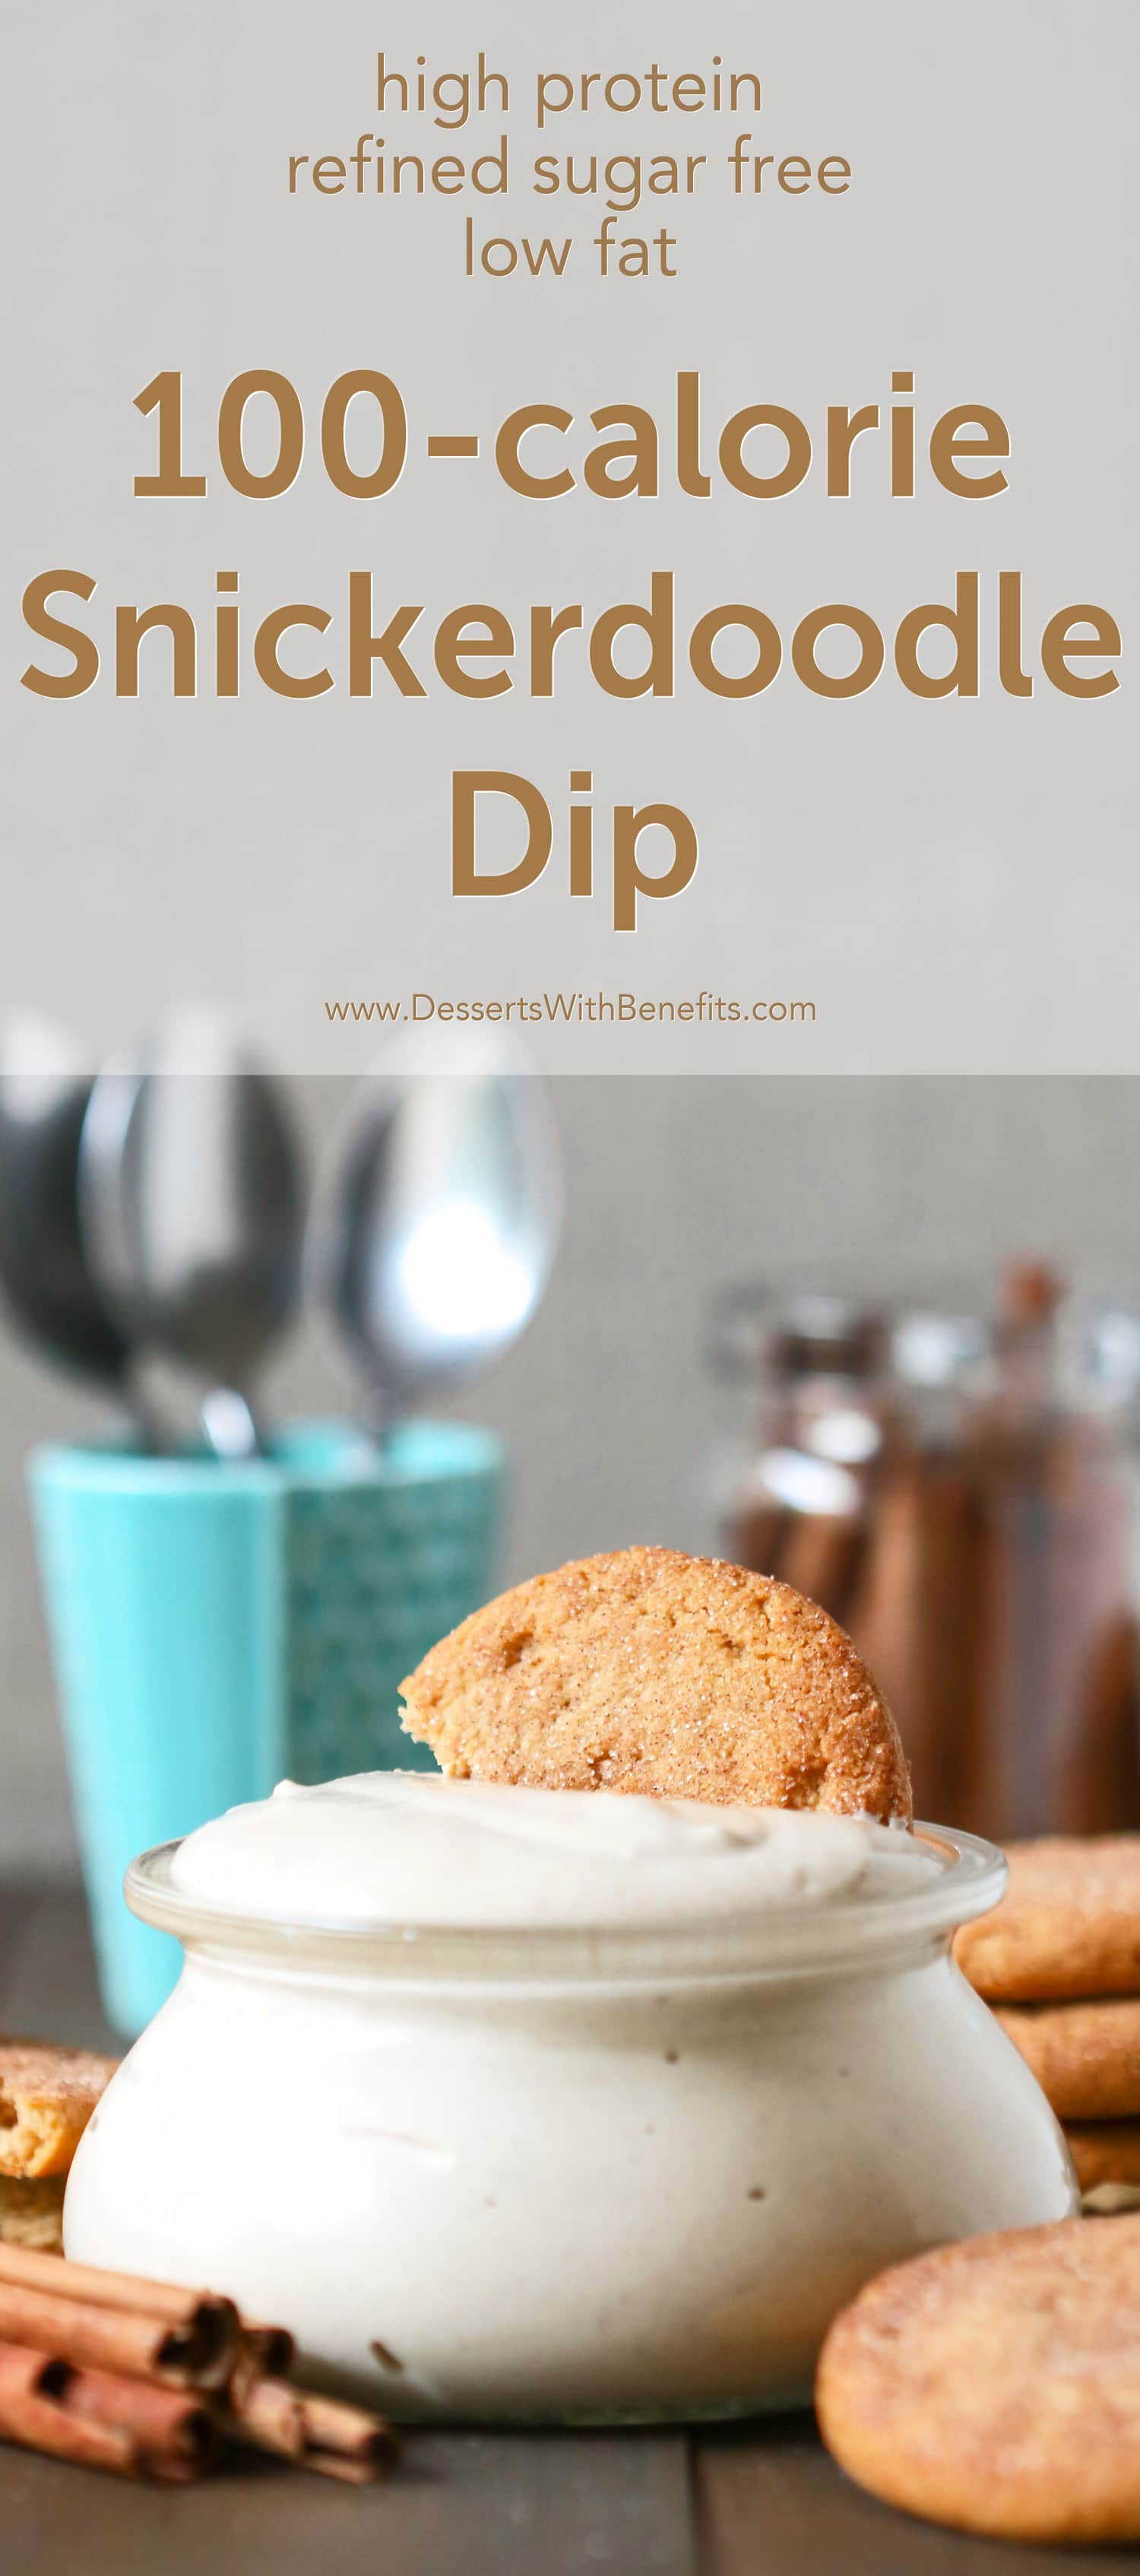 This 100-calorie Snickerdoodle Dip is sweet, thick, creamy, and spiced with cinnamon. Your favorite cookie in dippable form, made healthy, sugar free, low fat, high protein, and gluten free!